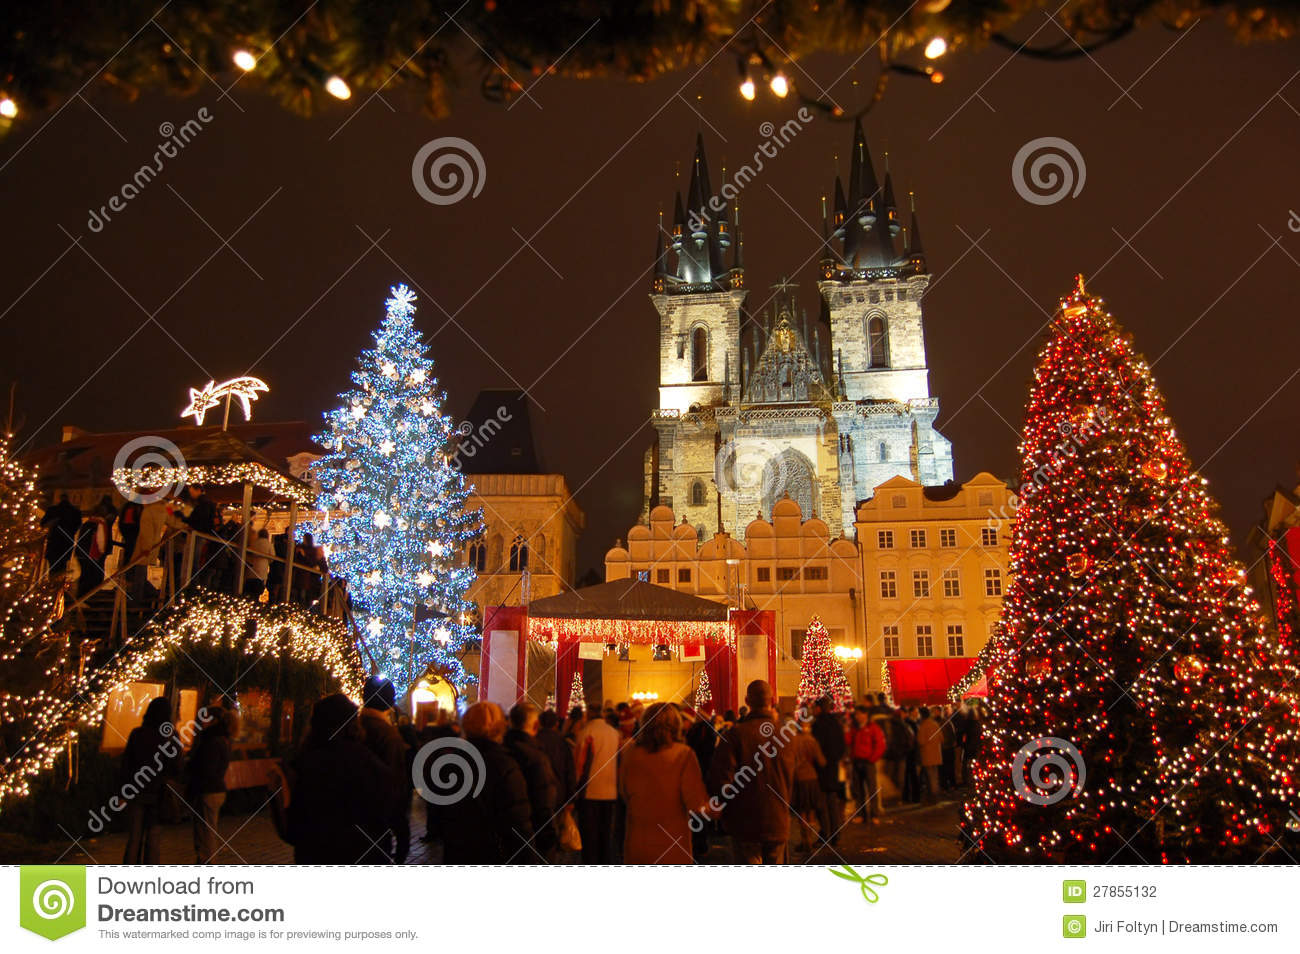 weihnachten in prag stockfotografie bild 27855132. Black Bedroom Furniture Sets. Home Design Ideas